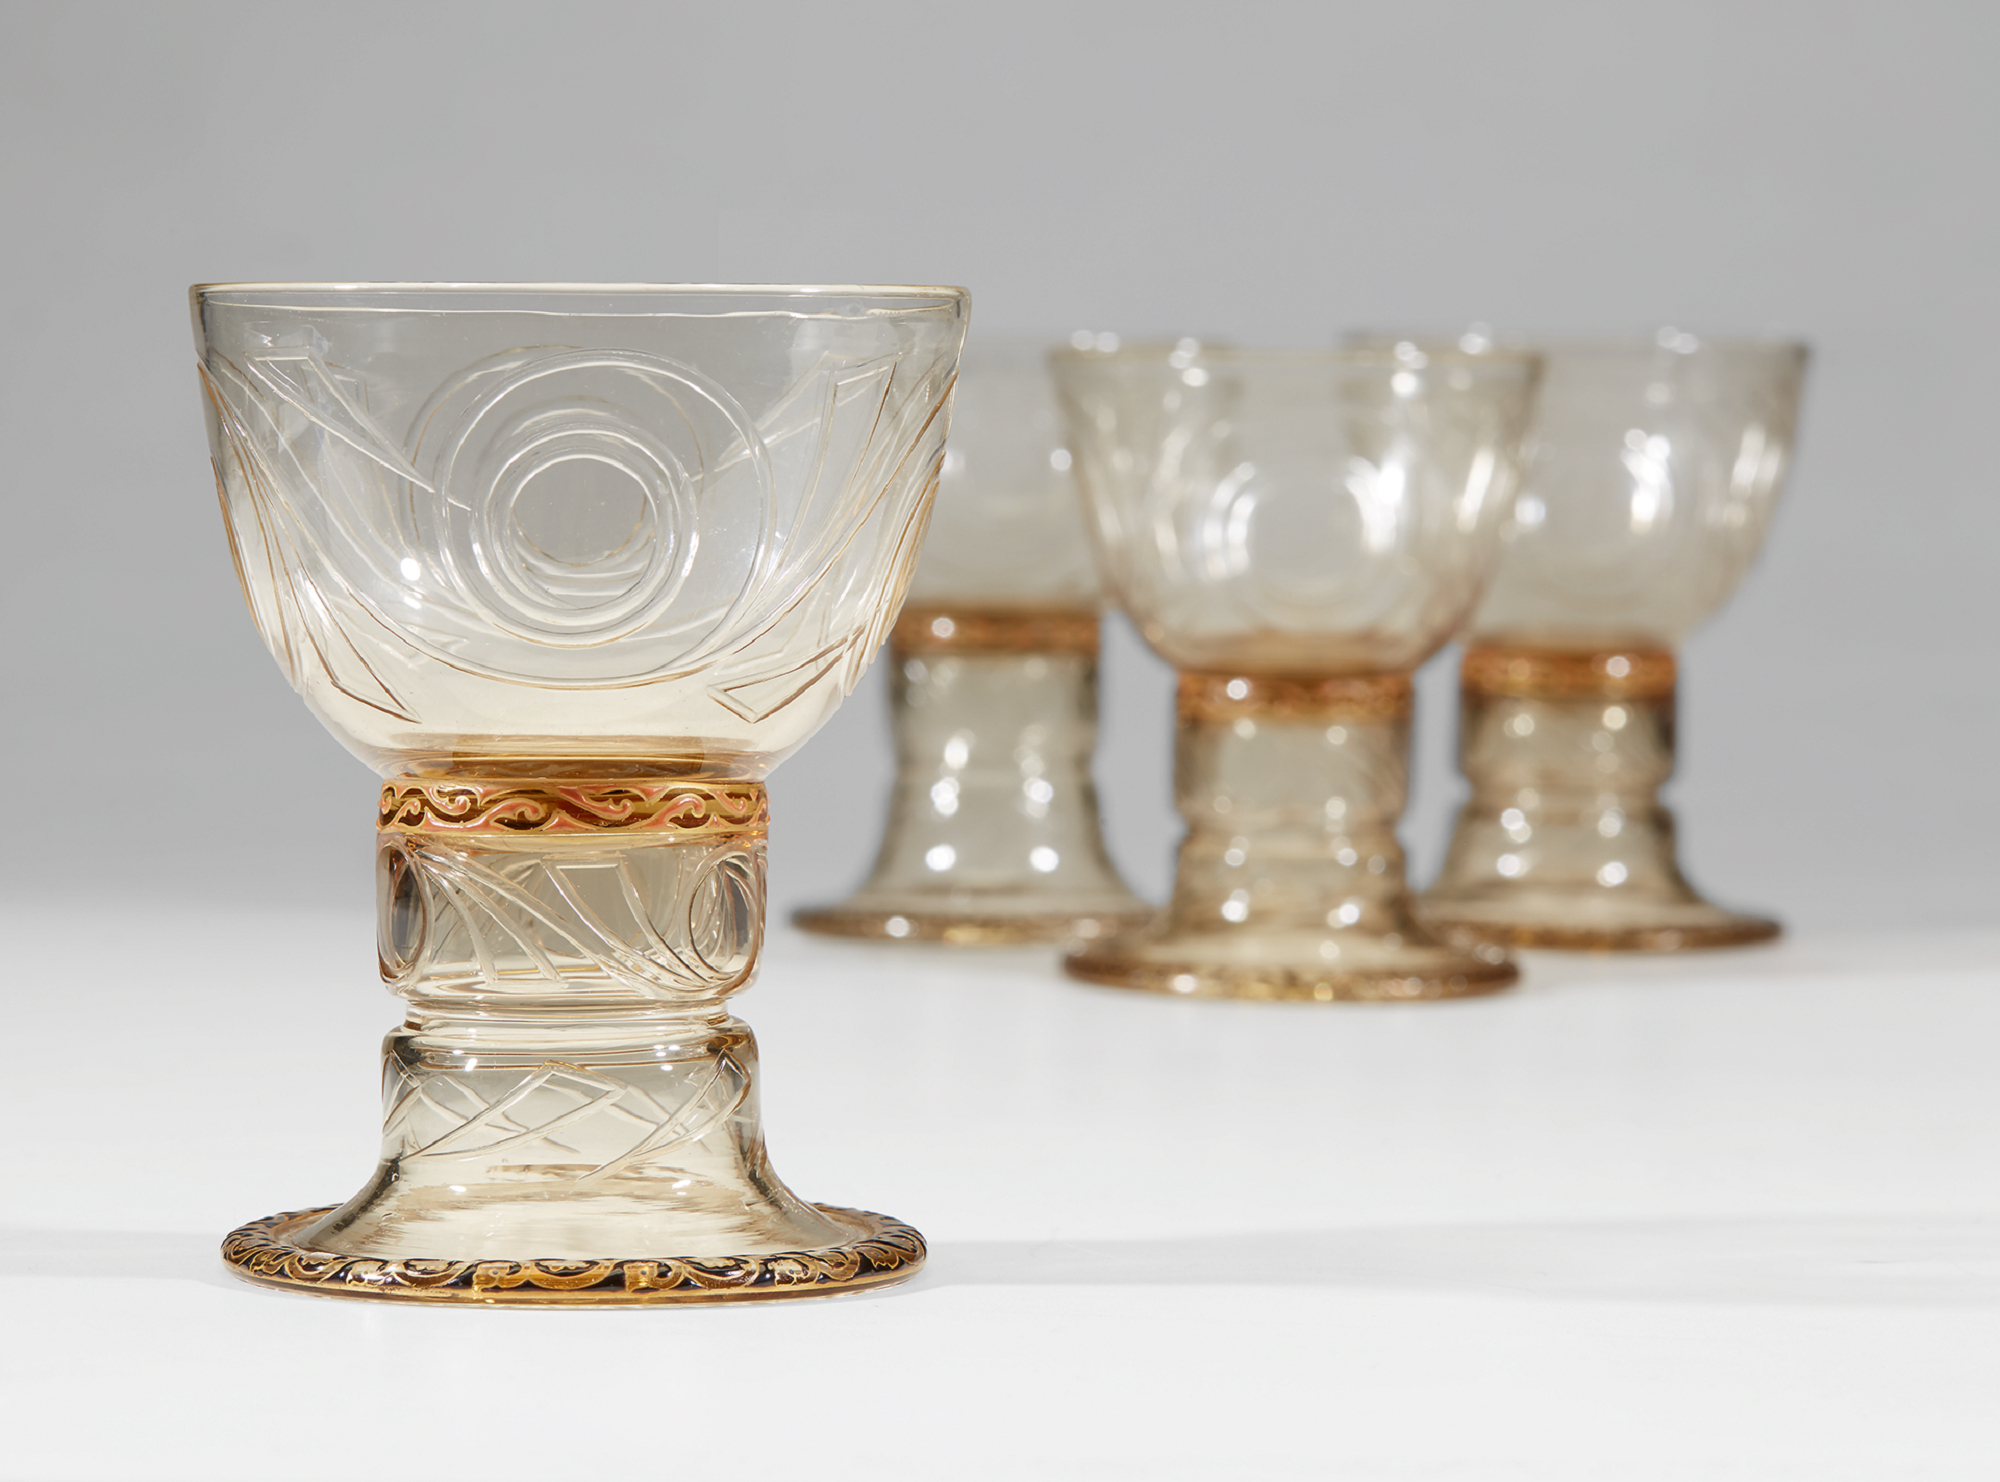 Émile Gallé, A Set of Twelve Drinking Glasses, France, circa 1895